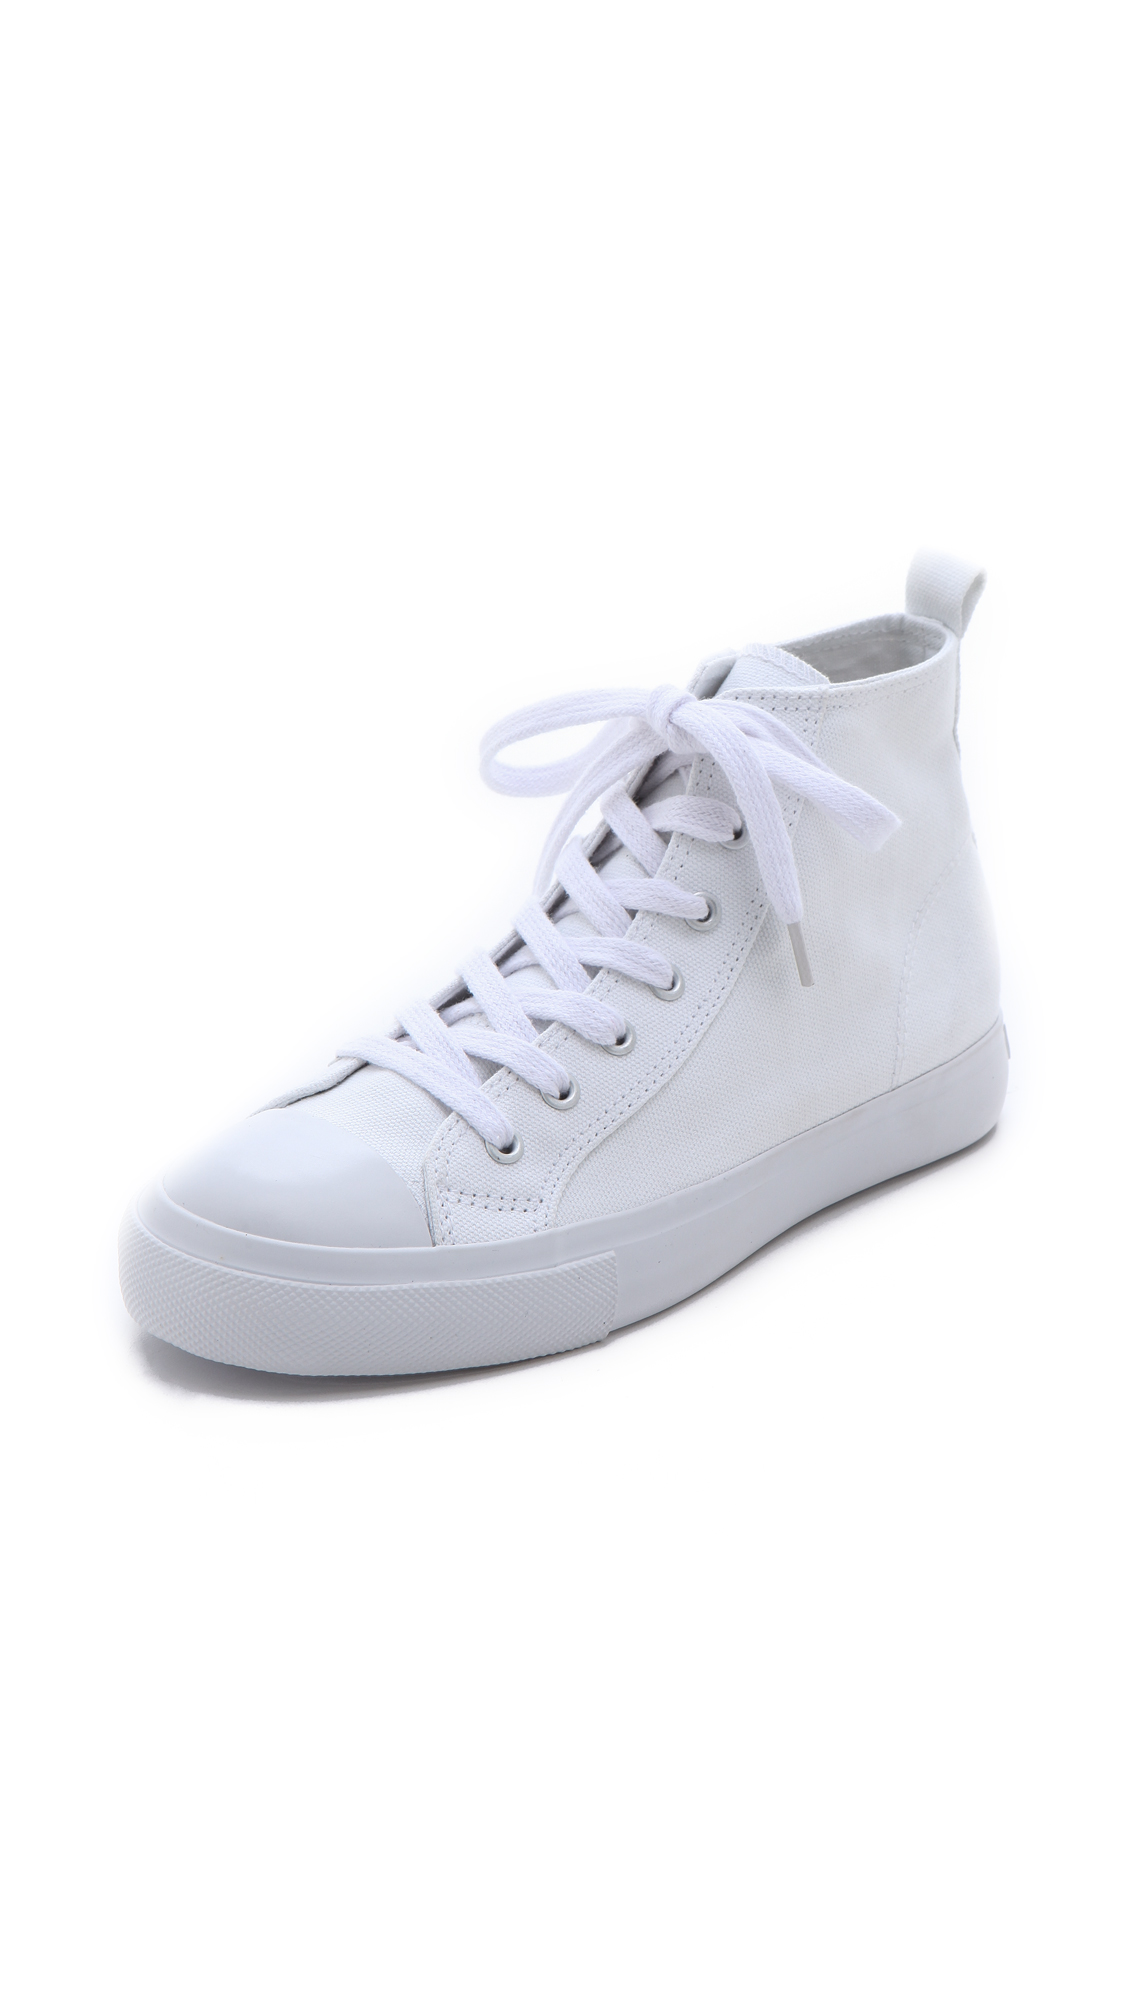 cheap monday base high top sneakers in white lyst